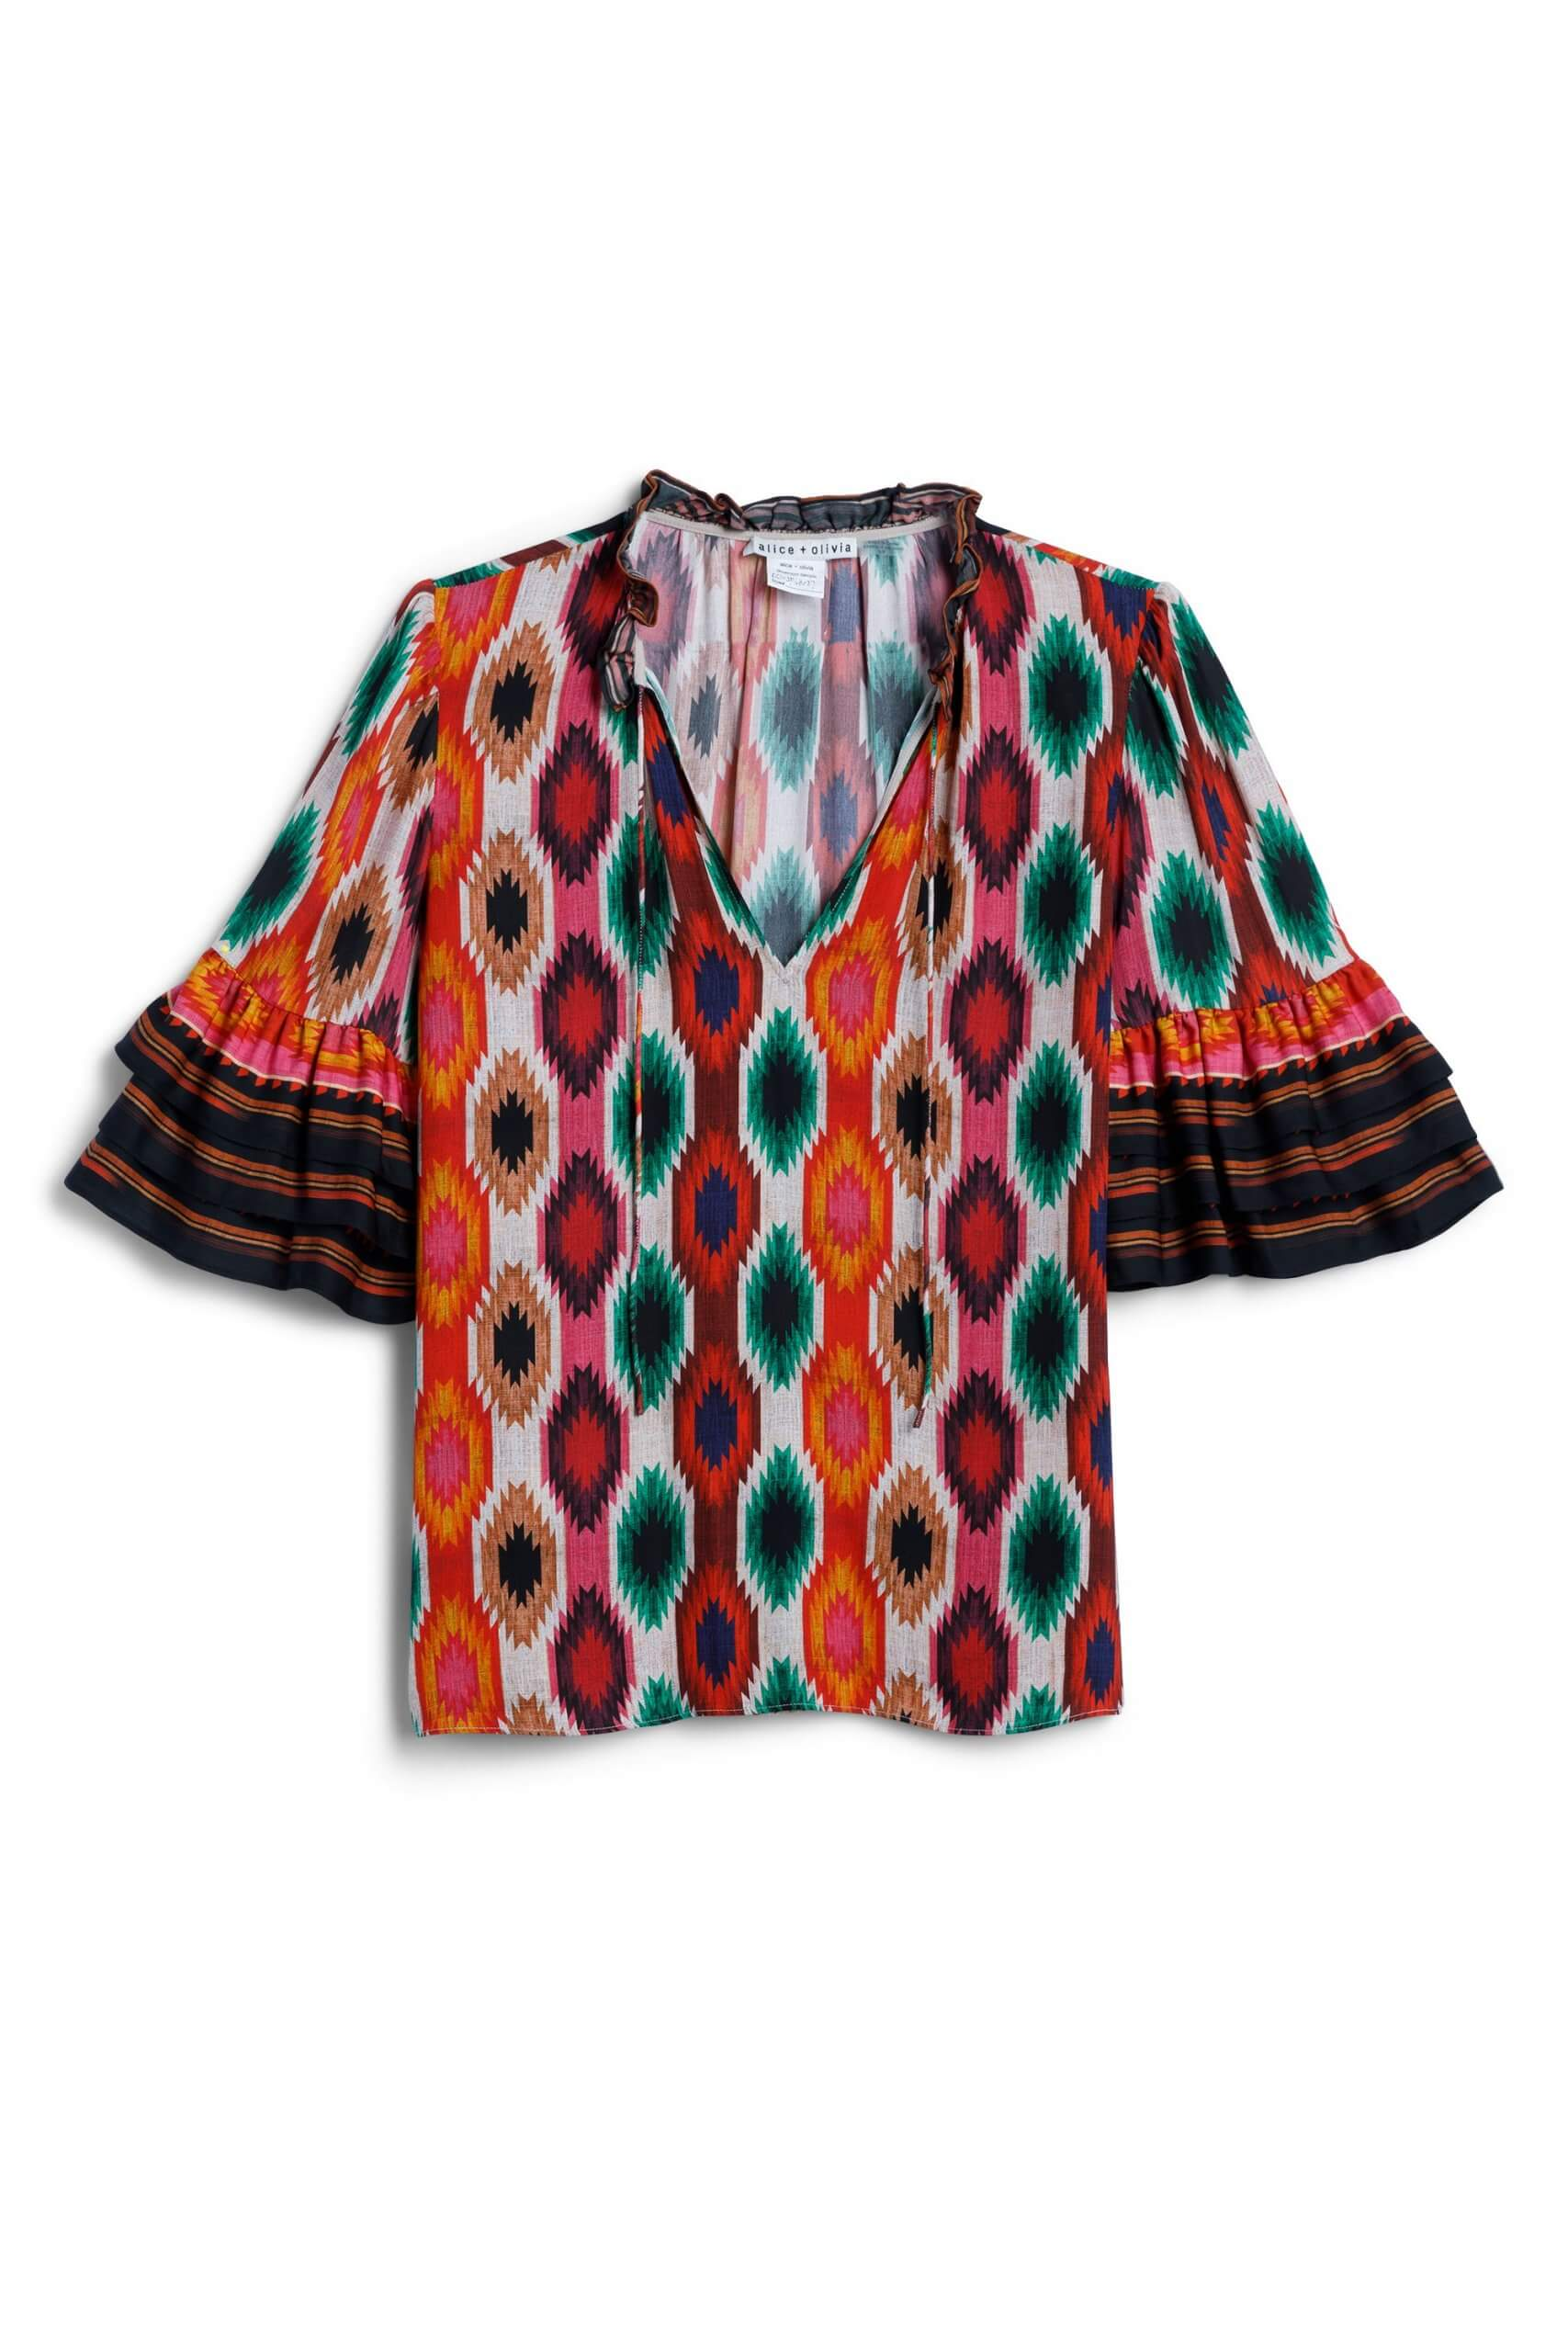 Stitch Fix Women's orange and purple printed blouse with tiered sleeves.